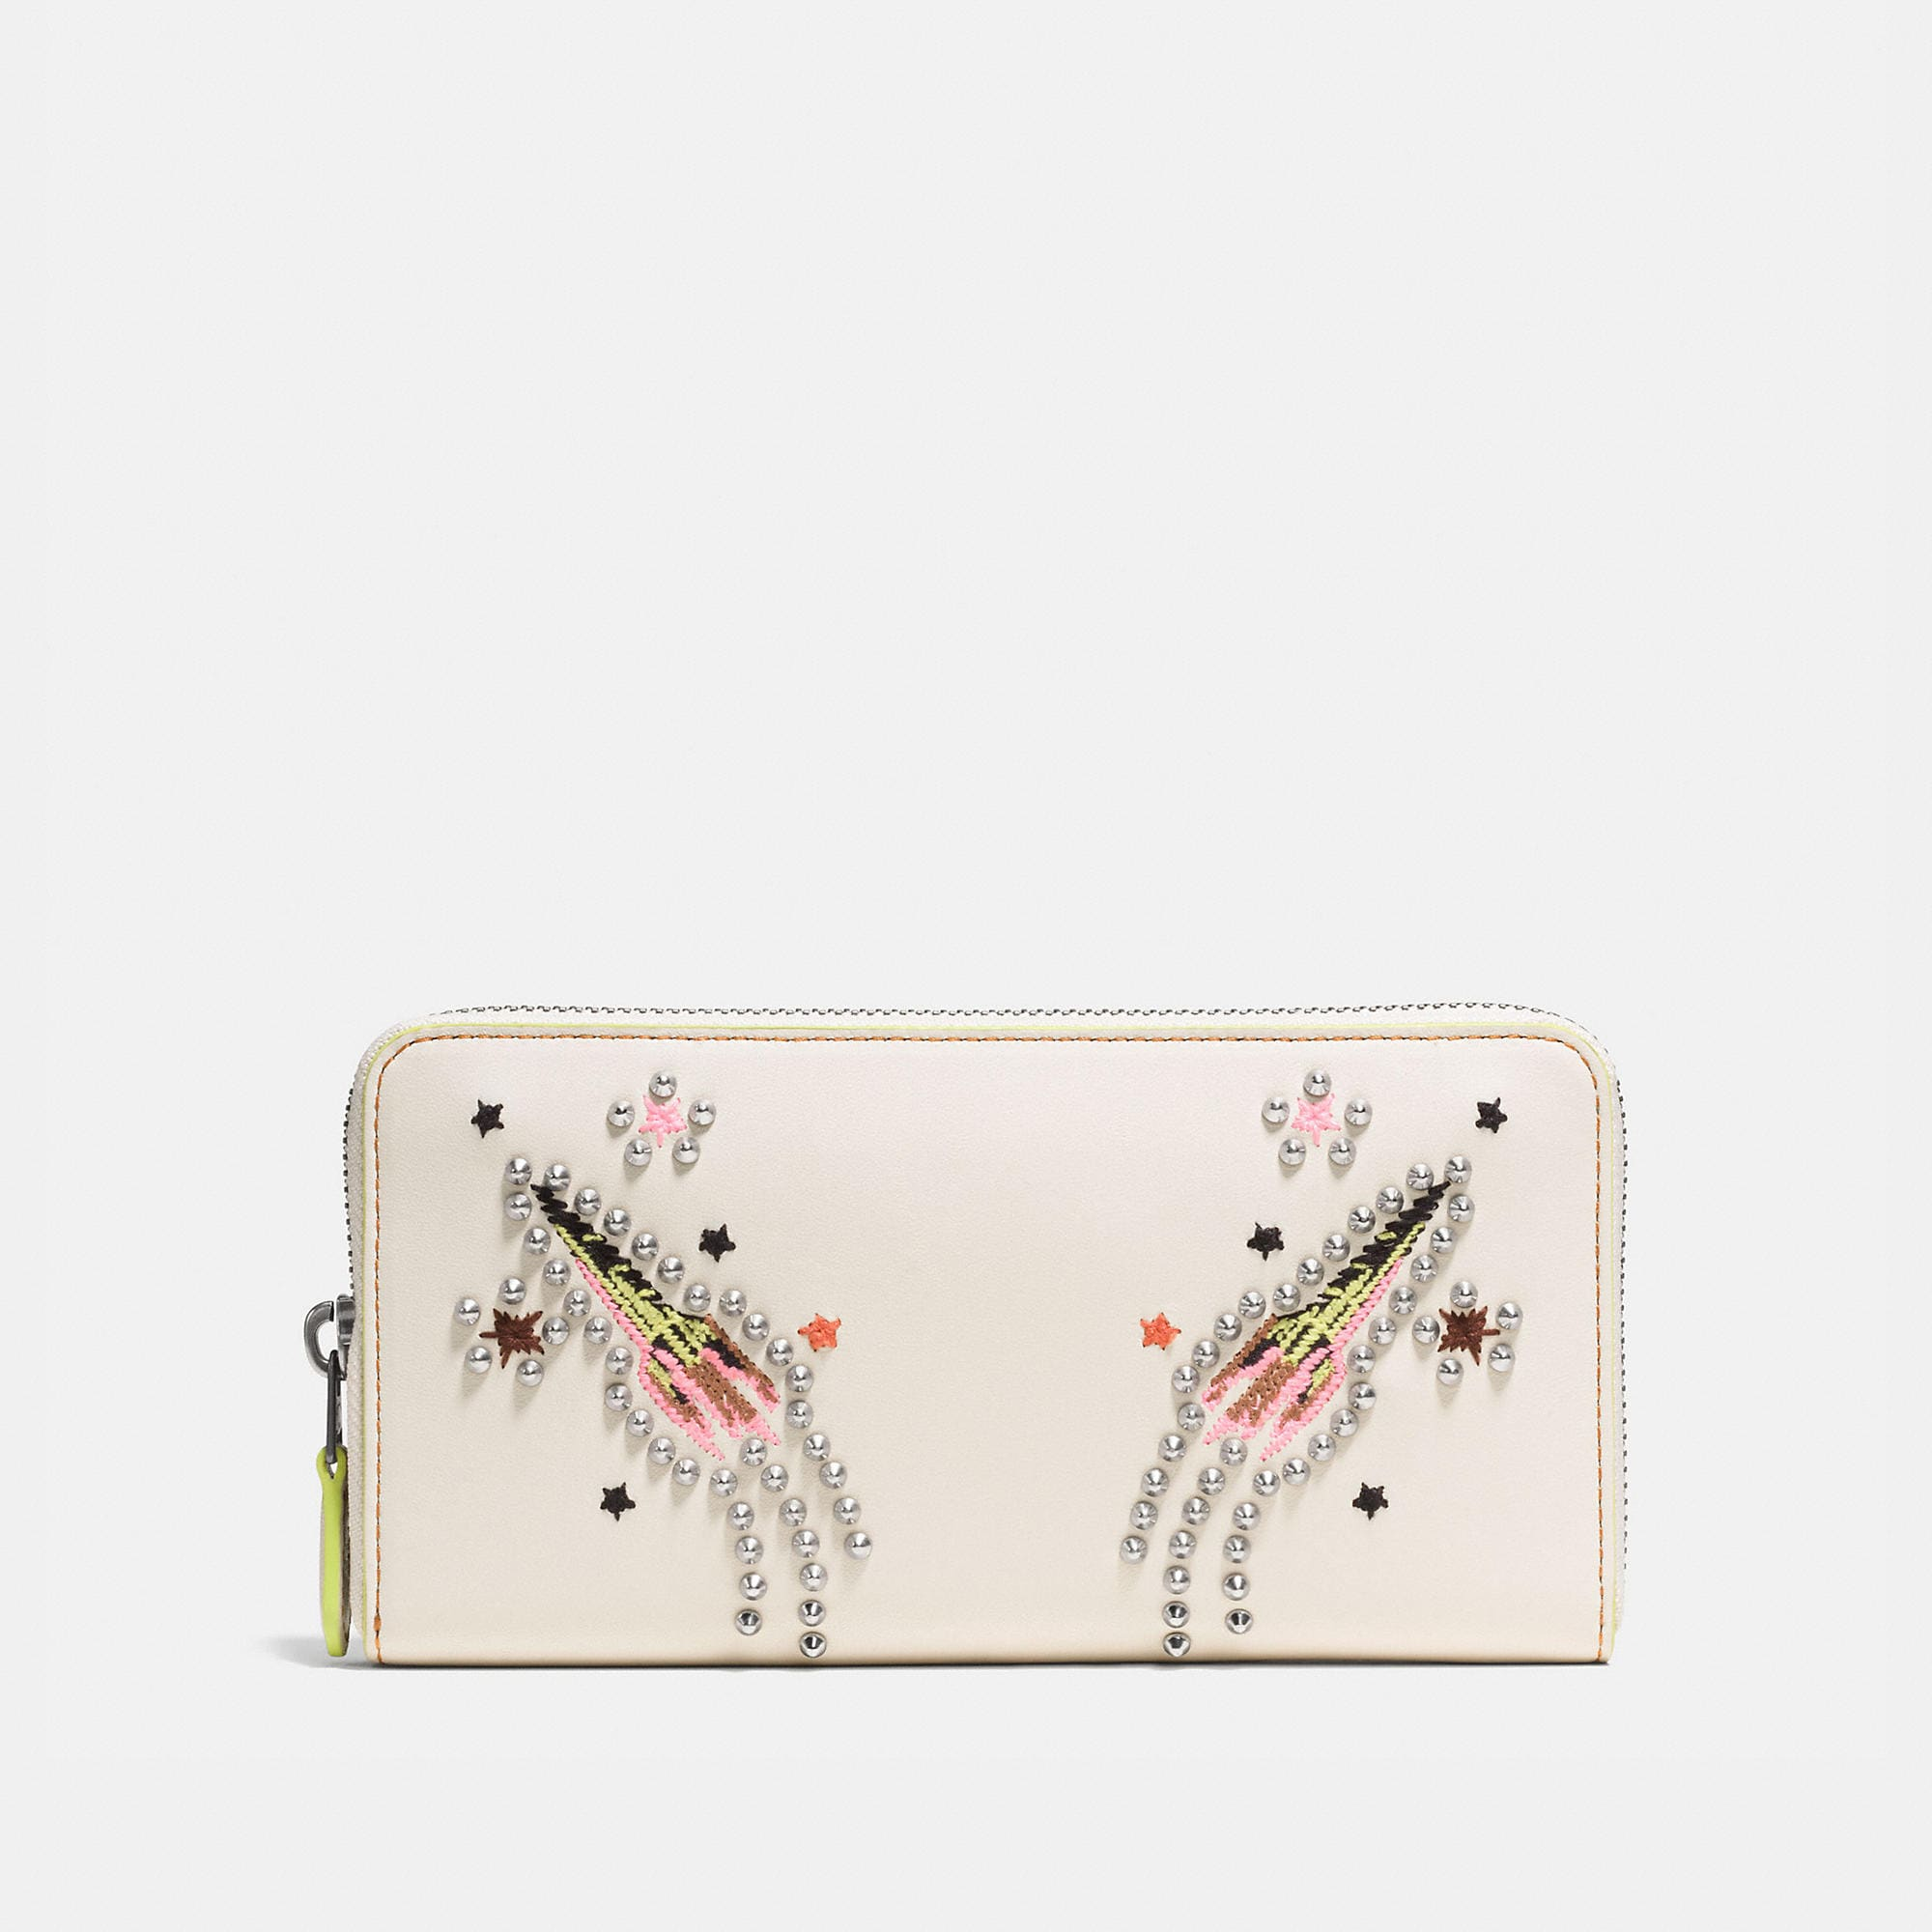 Coach Accordion Zip Wallet In Glovetanned Leather With Rocket Embellishment